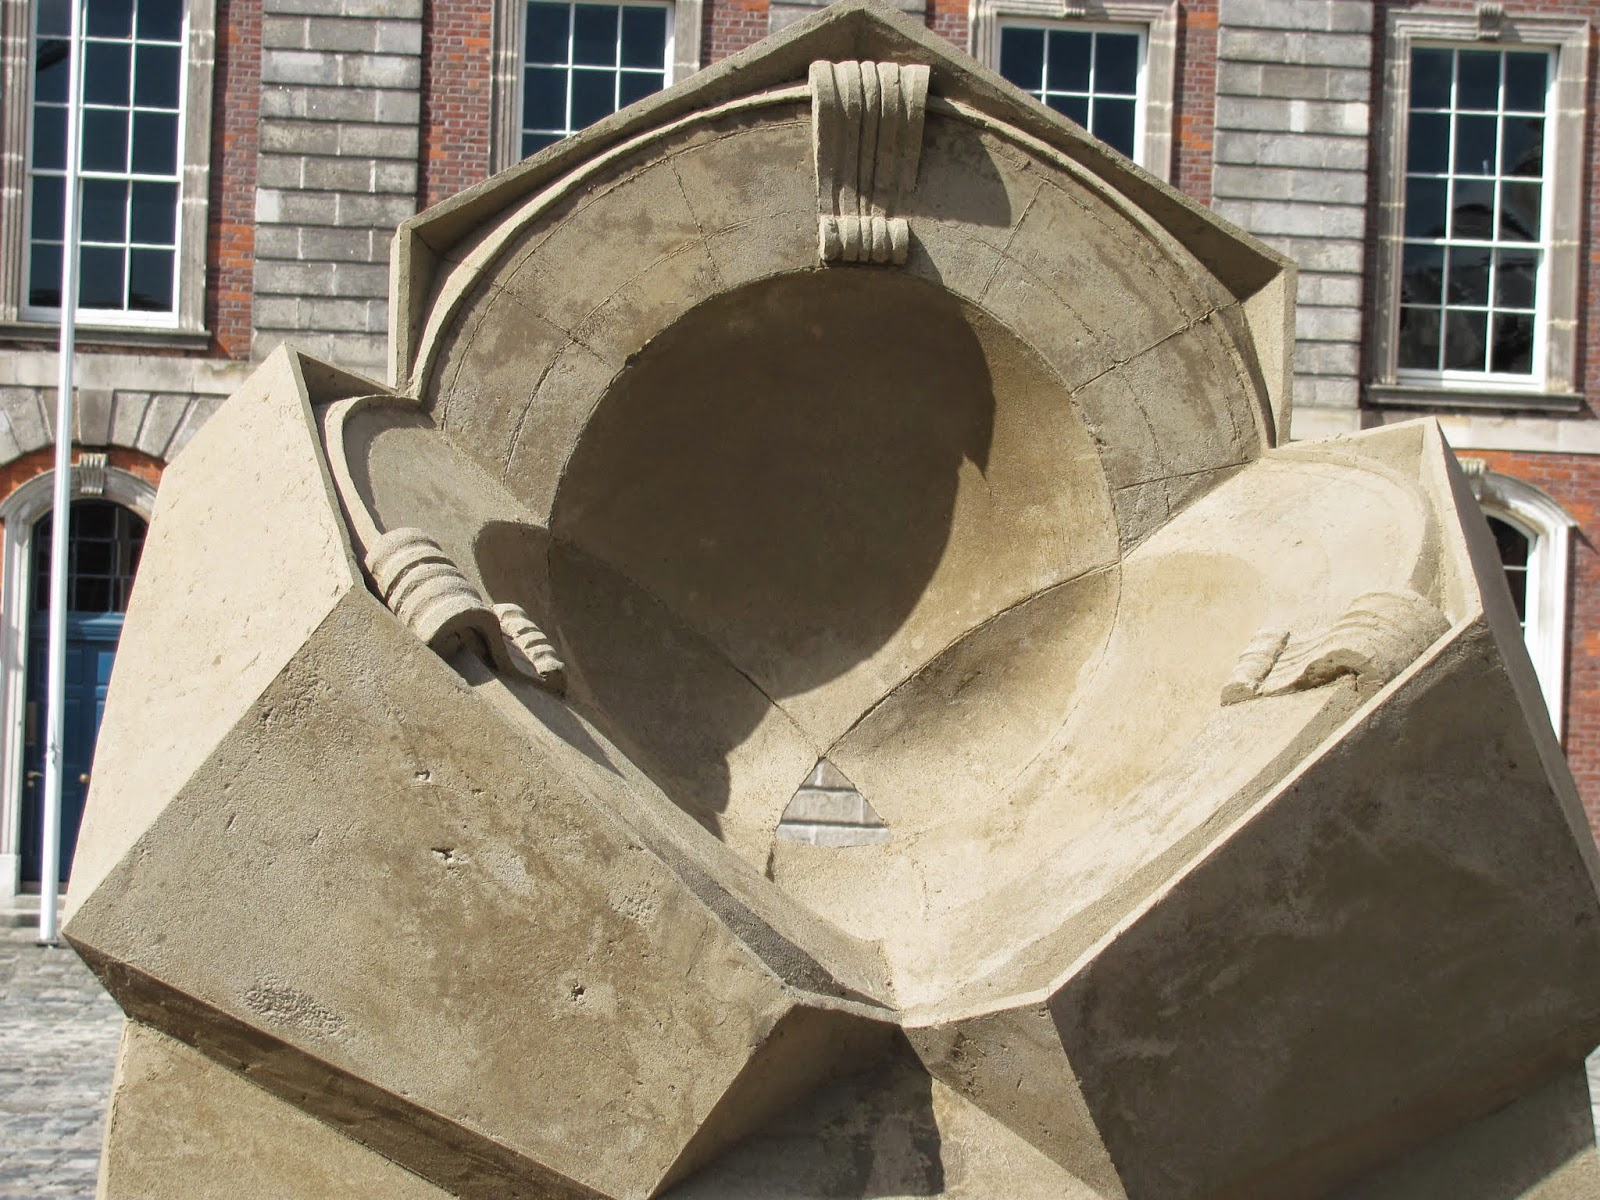 A piece at Dublin Castle Sand Sculptures 2014